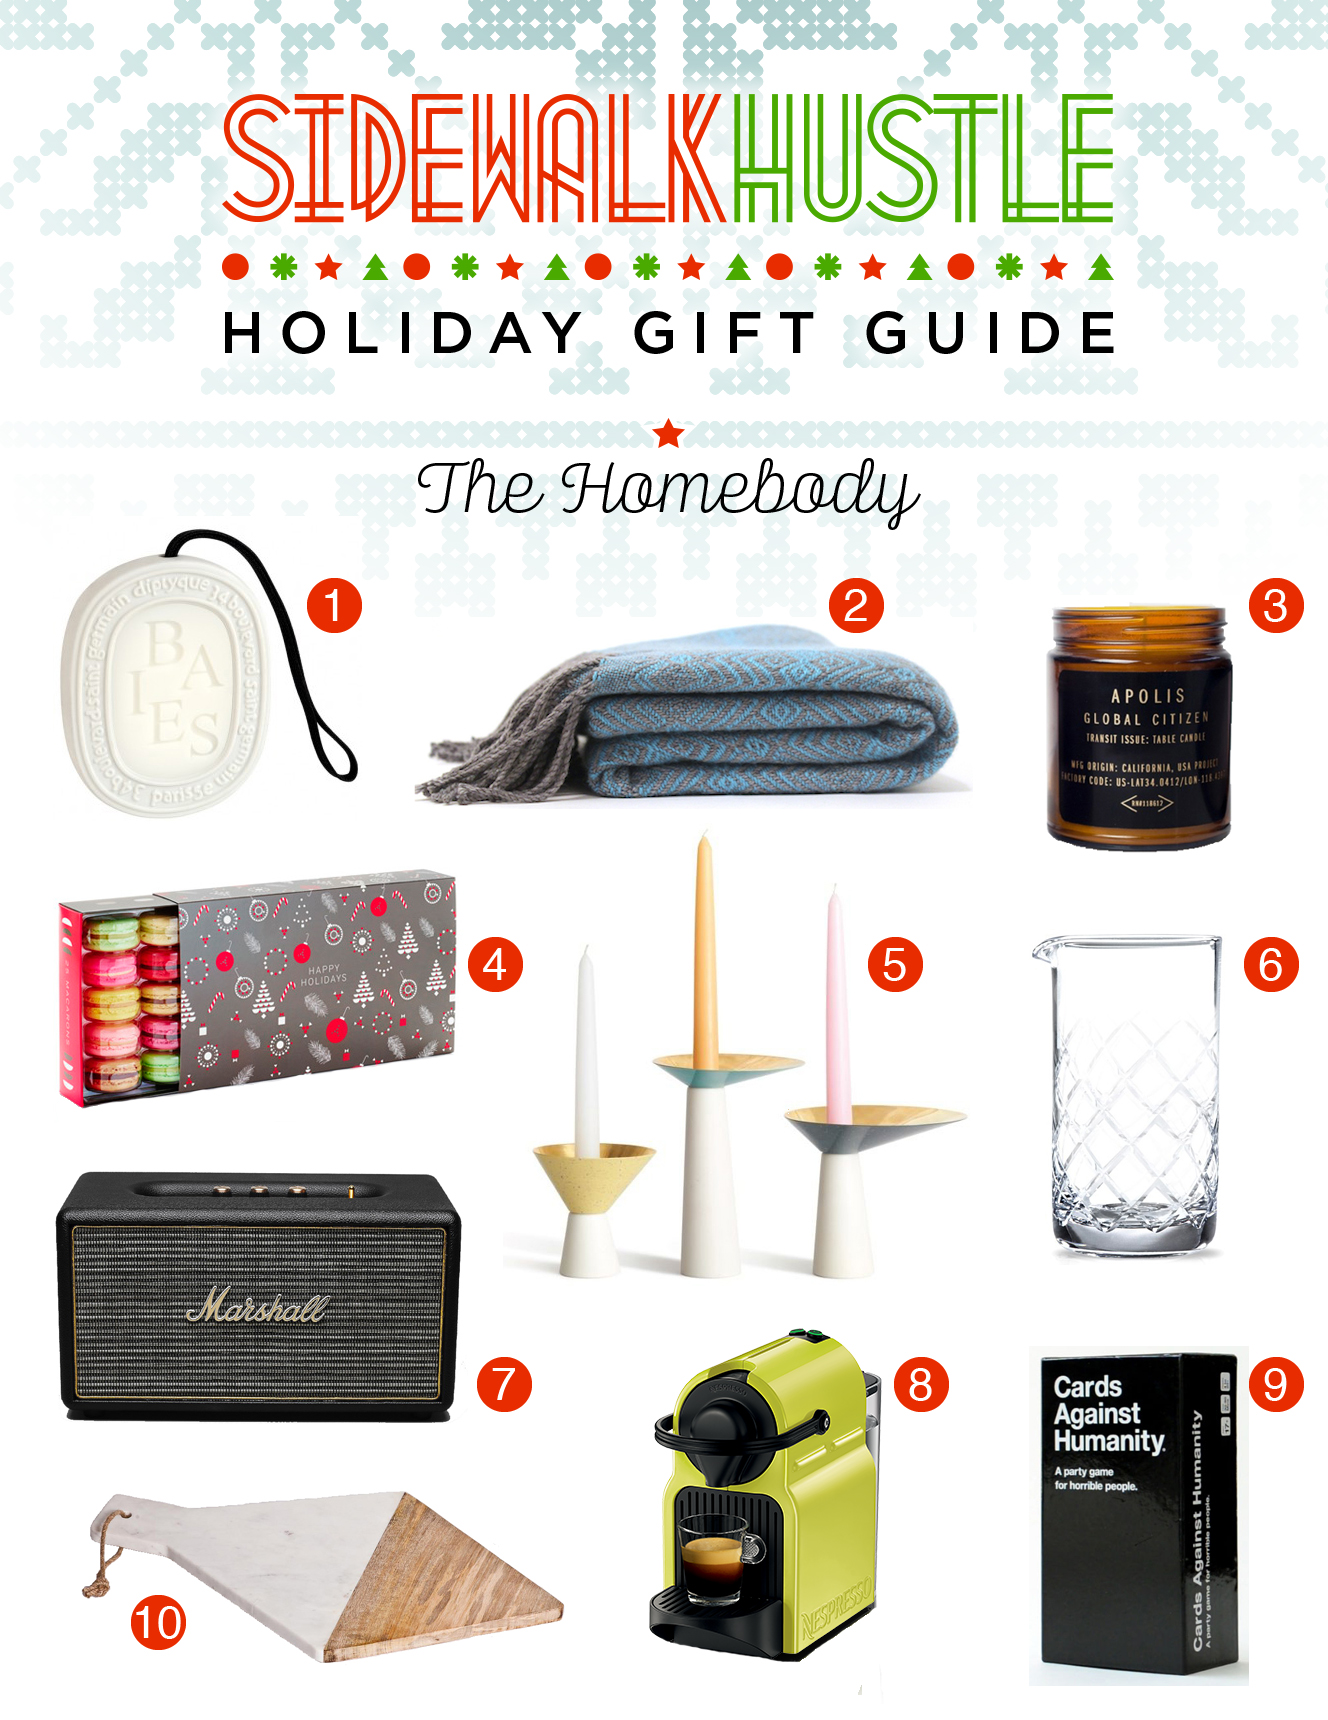 Sidewalk Hustle Holiday Gift Guide 2014 - The Homebody